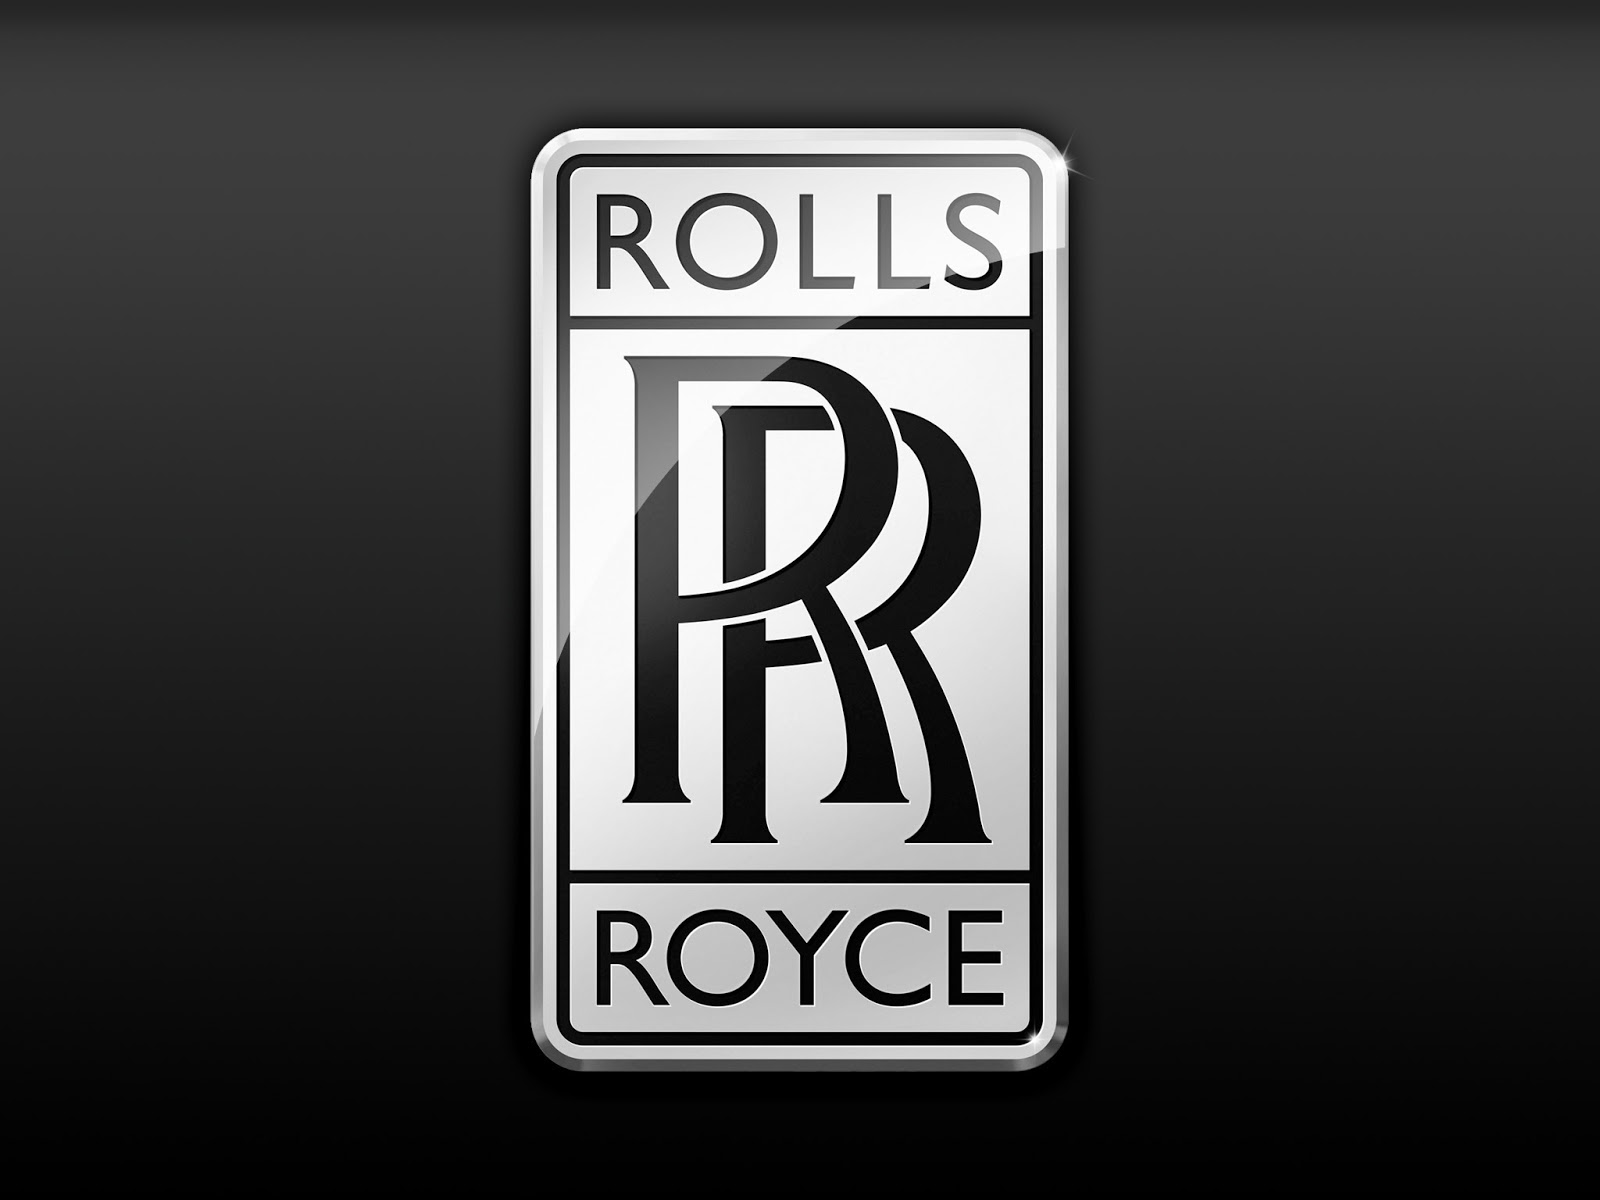 rolls royce logo auto cars concept. Black Bedroom Furniture Sets. Home Design Ideas